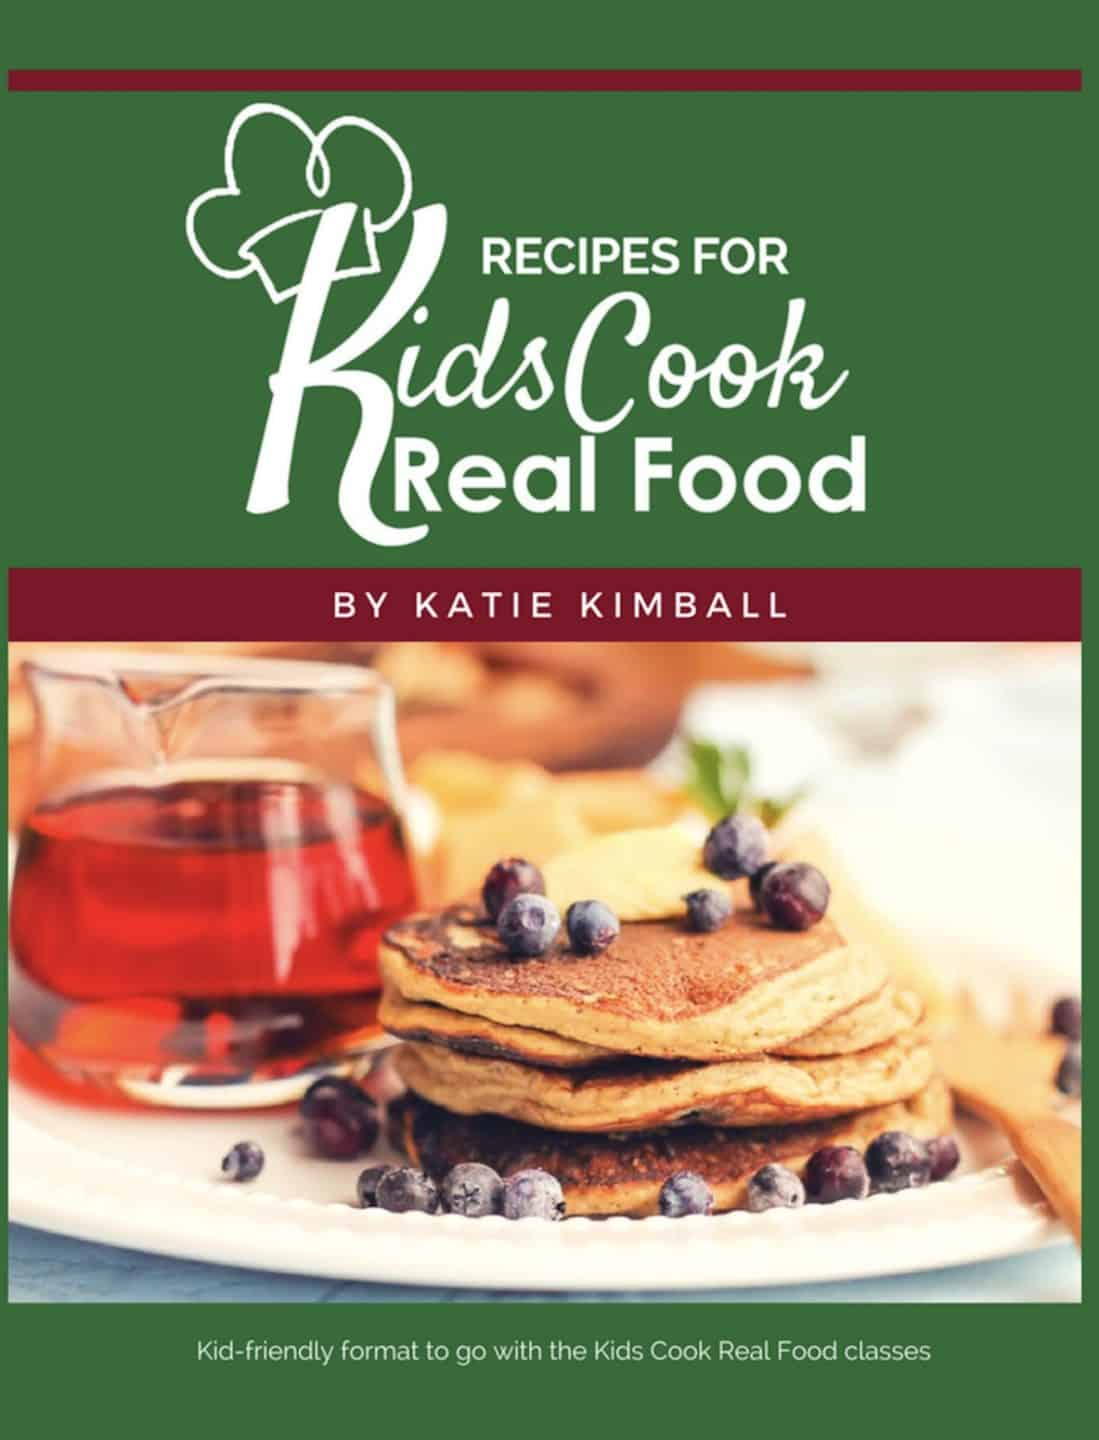 Recipes for Kids Cook Real Food by Katie Kimball